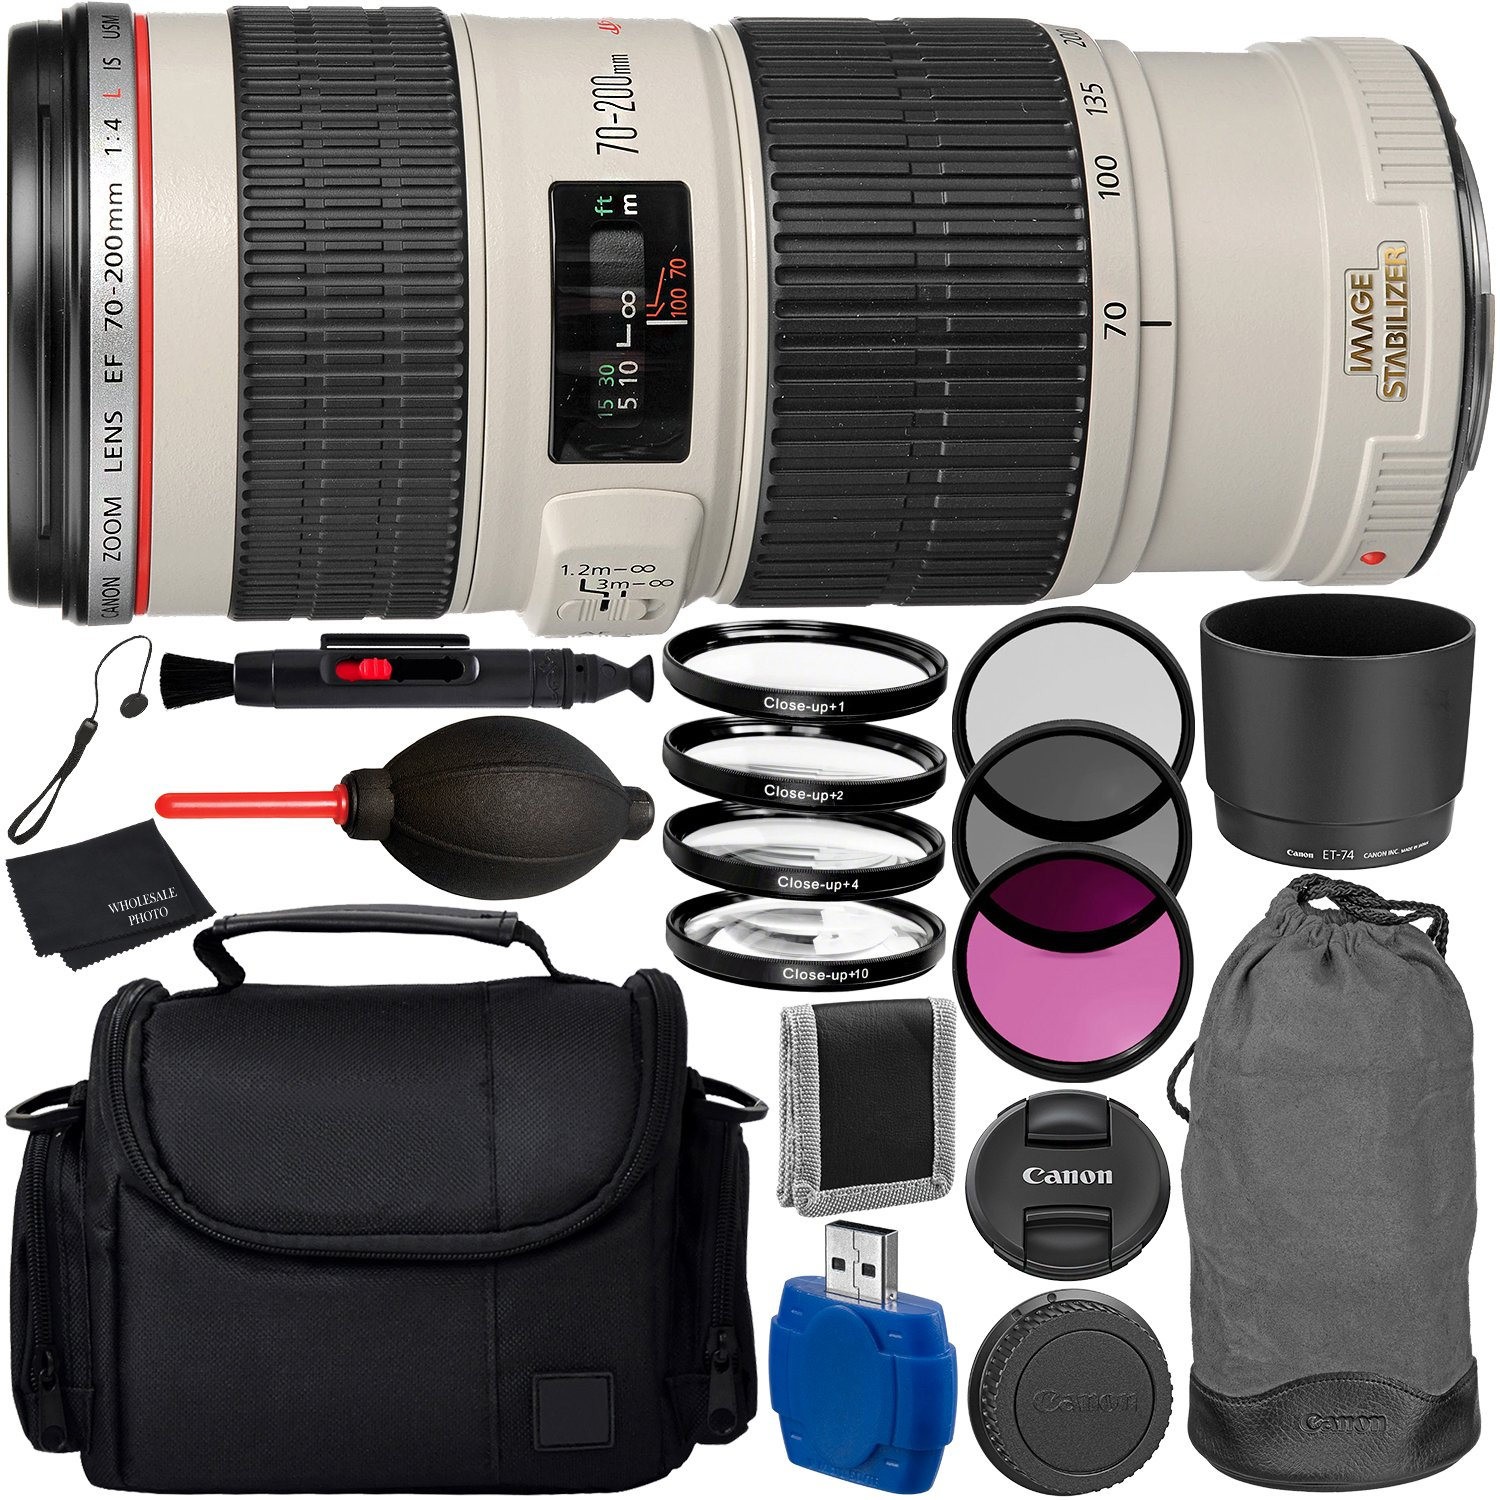 Canon EF 70-200mm f/4L IS USM Lens Bundle with Manufacturer Accessories & Accessory Kit for EOS 7D Mark II, 6D Mark II, 5D Mark IV, 5D S R, 5D S, 5D Mark III, 80D, 70D, 77D, T5, T6, T6s, T7i, SL2 by Canon